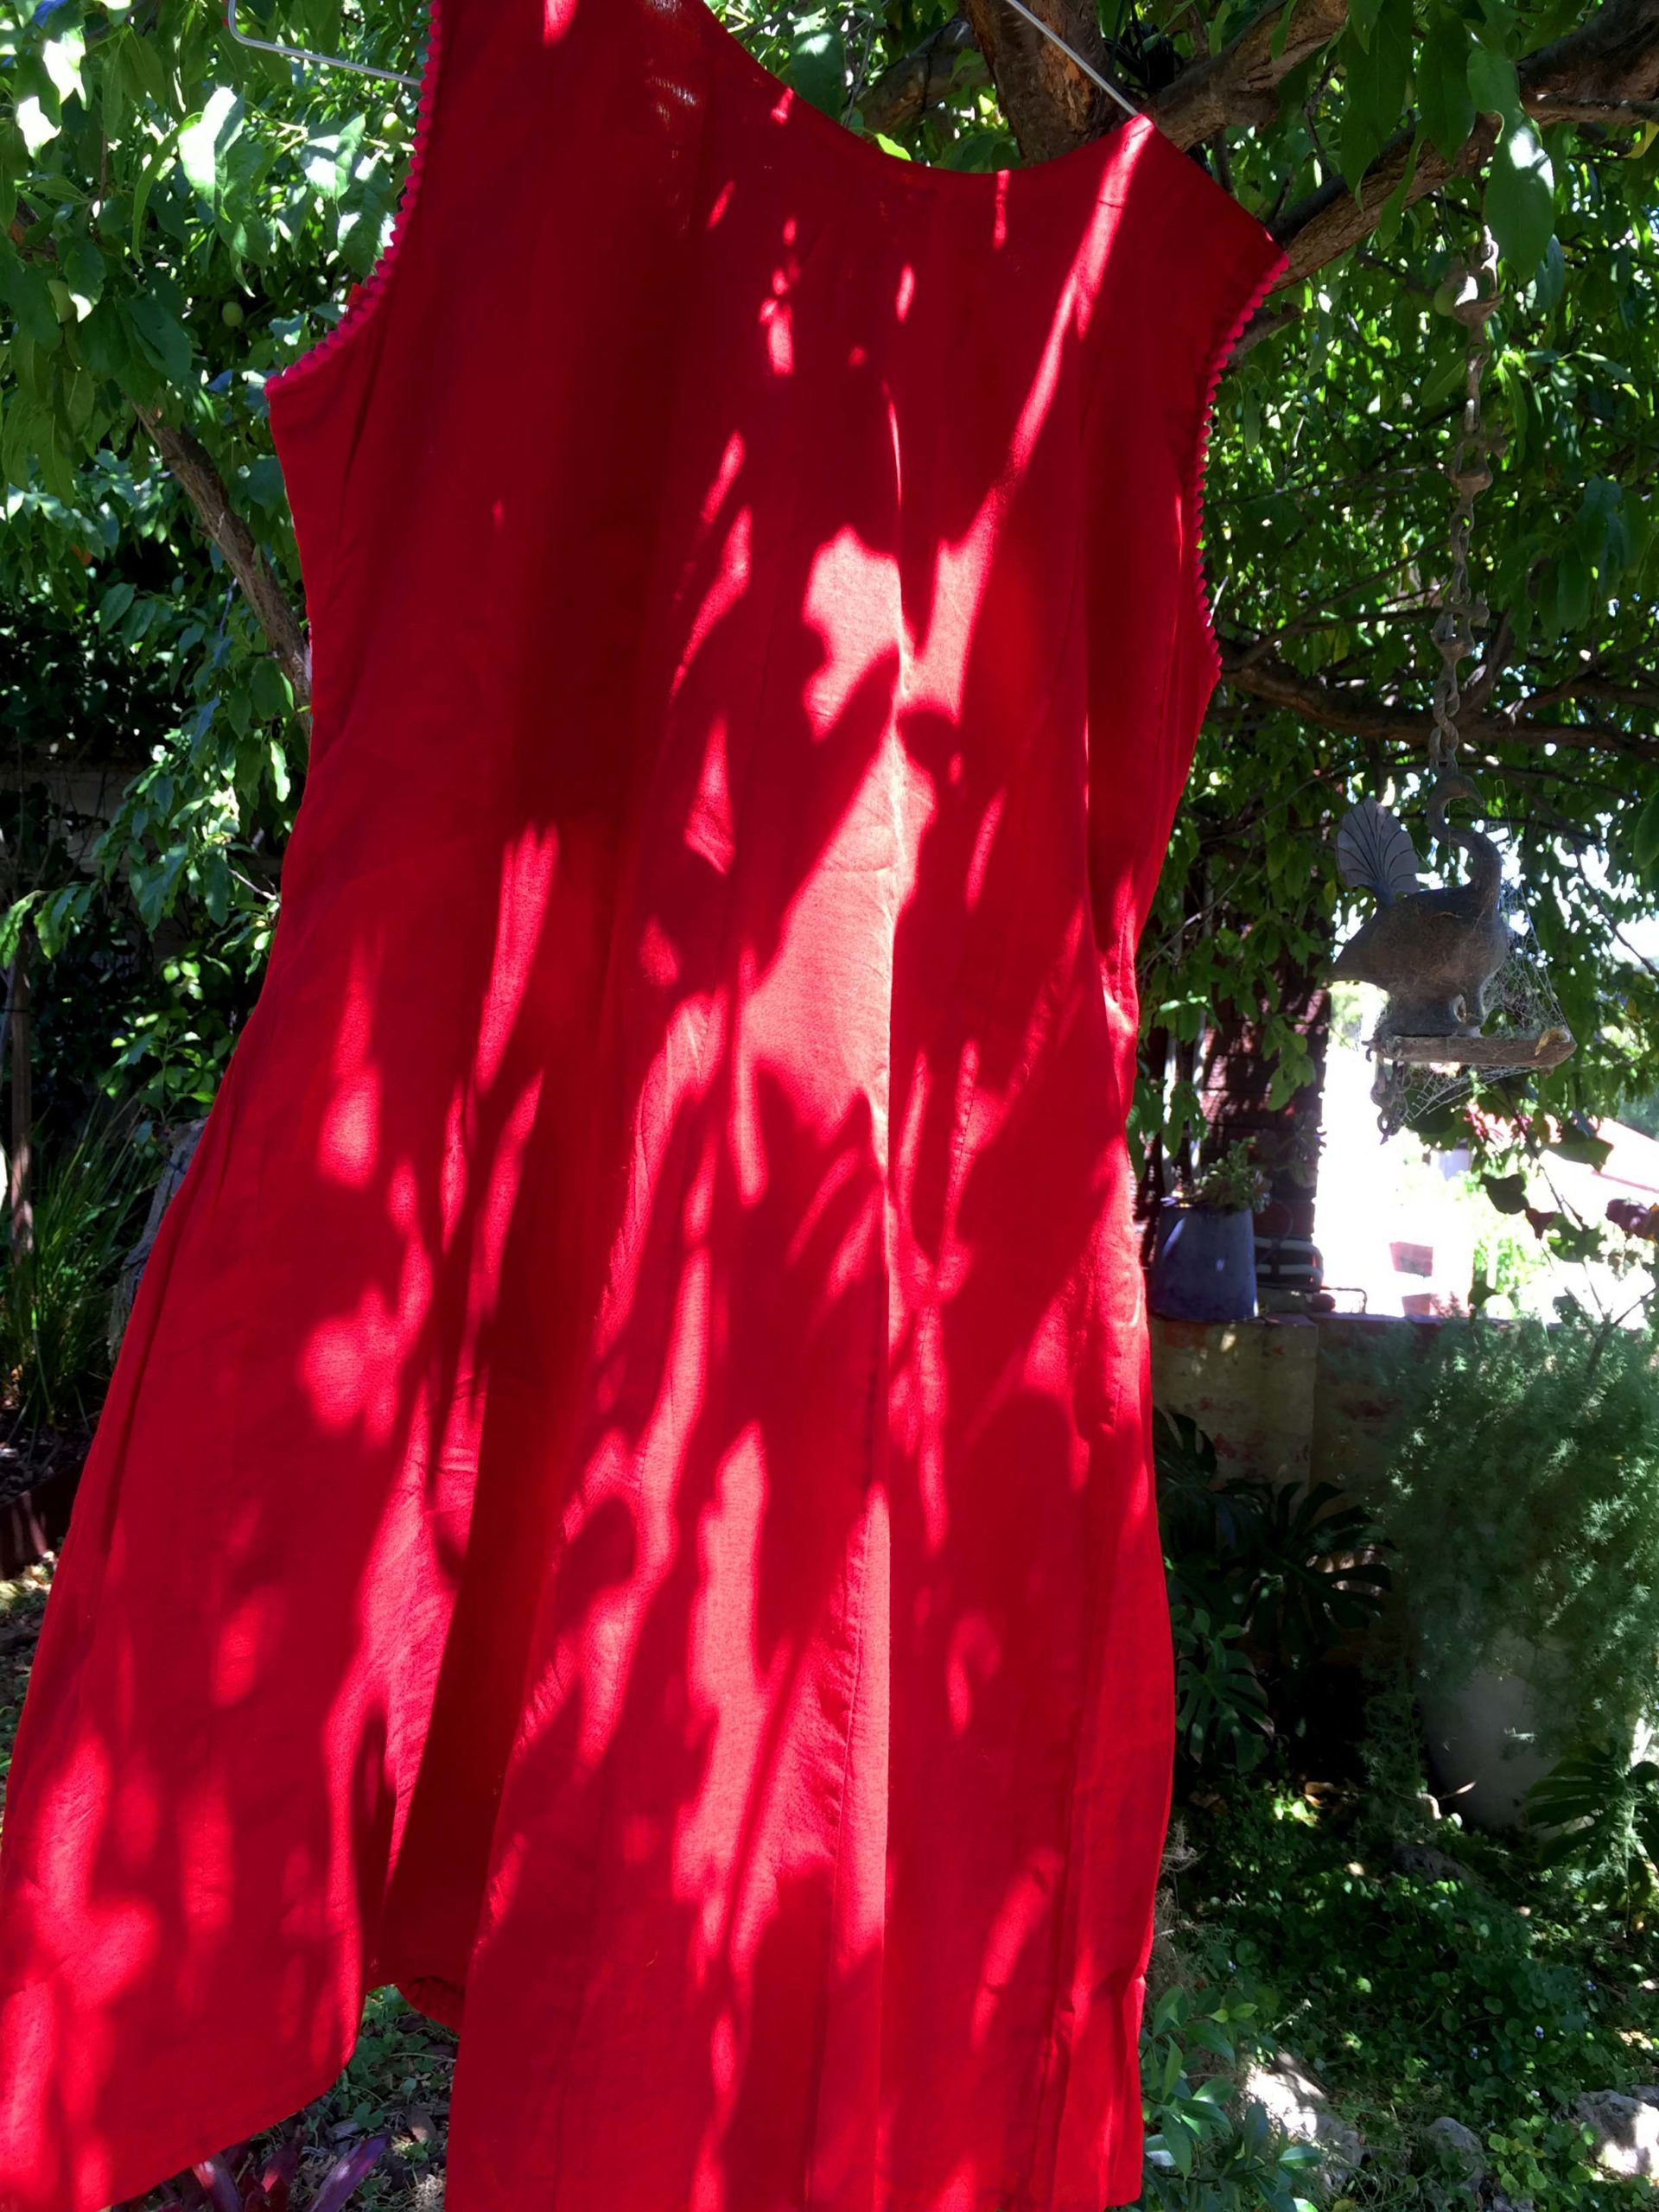 A red dress hangs from a tree, sunlight shines through the canopy projecting shadows onto the dress.